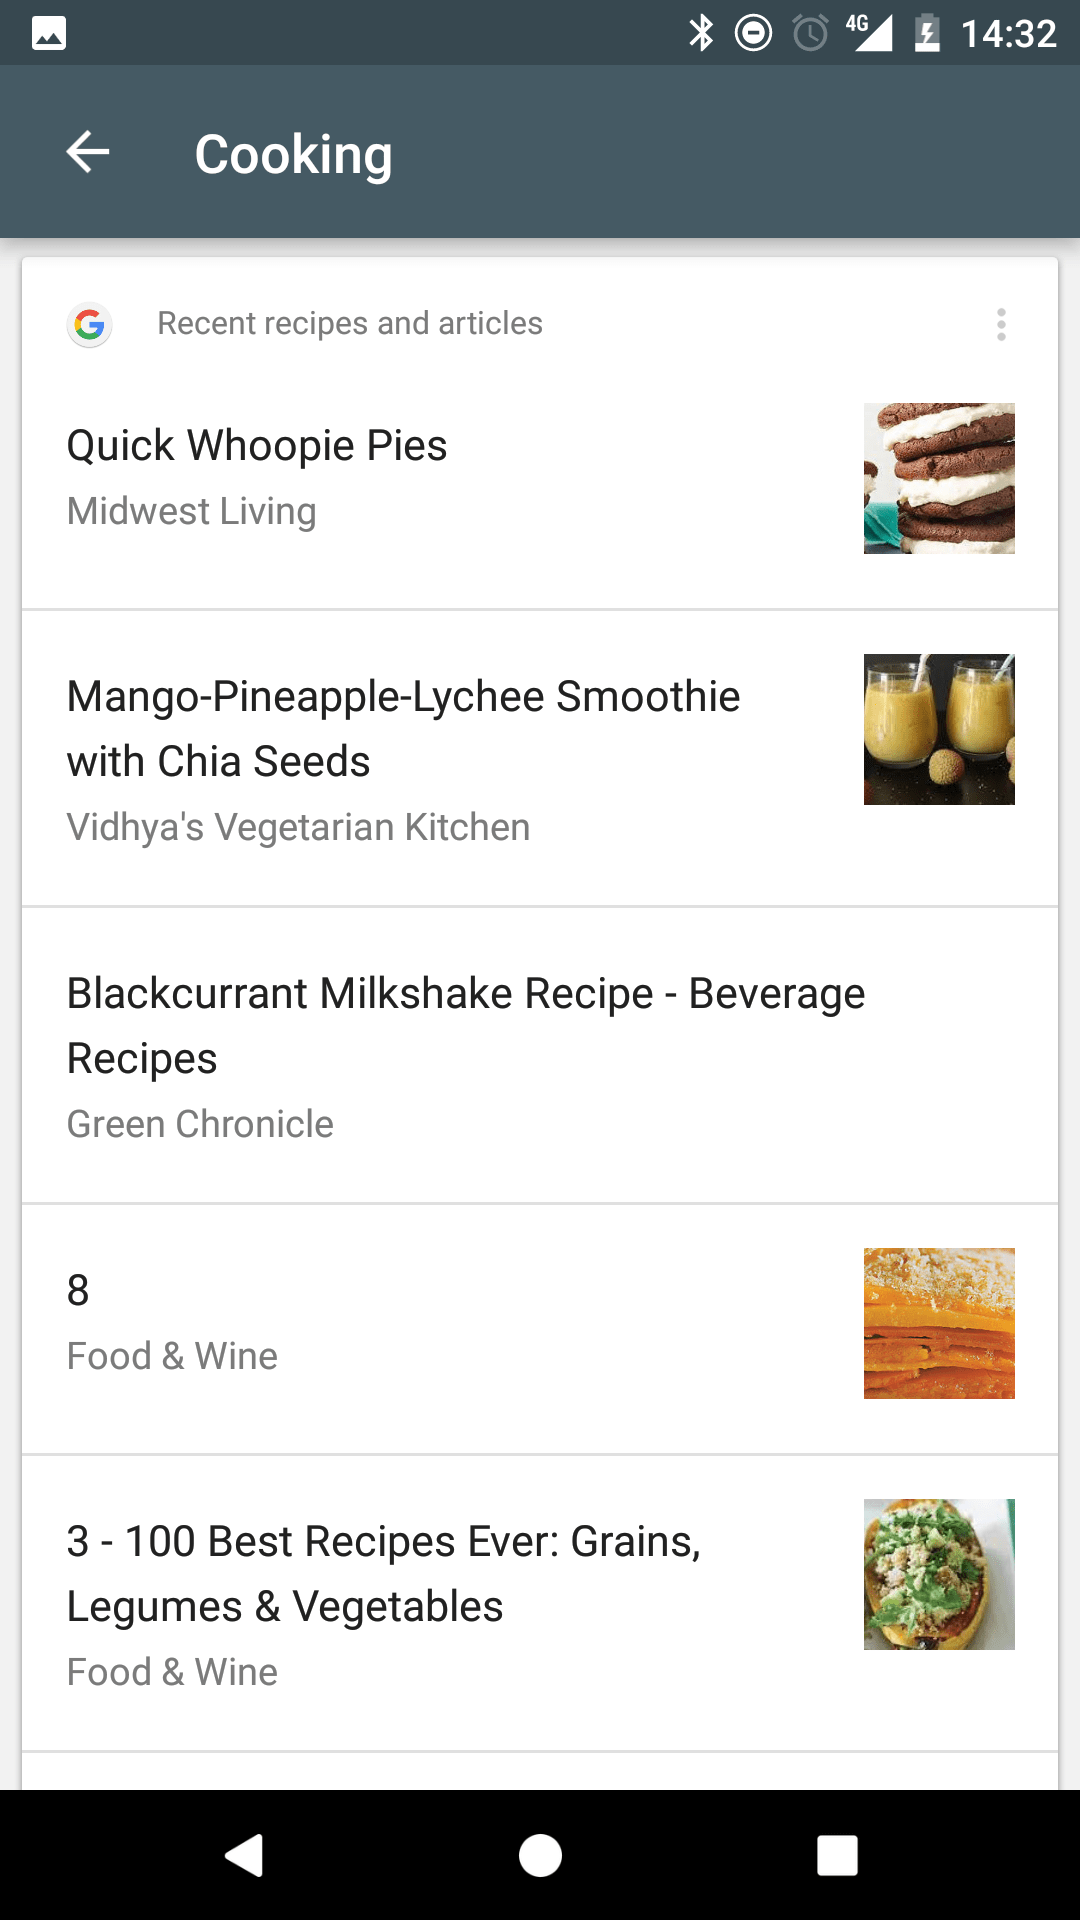 Google Now: New Cooking Card